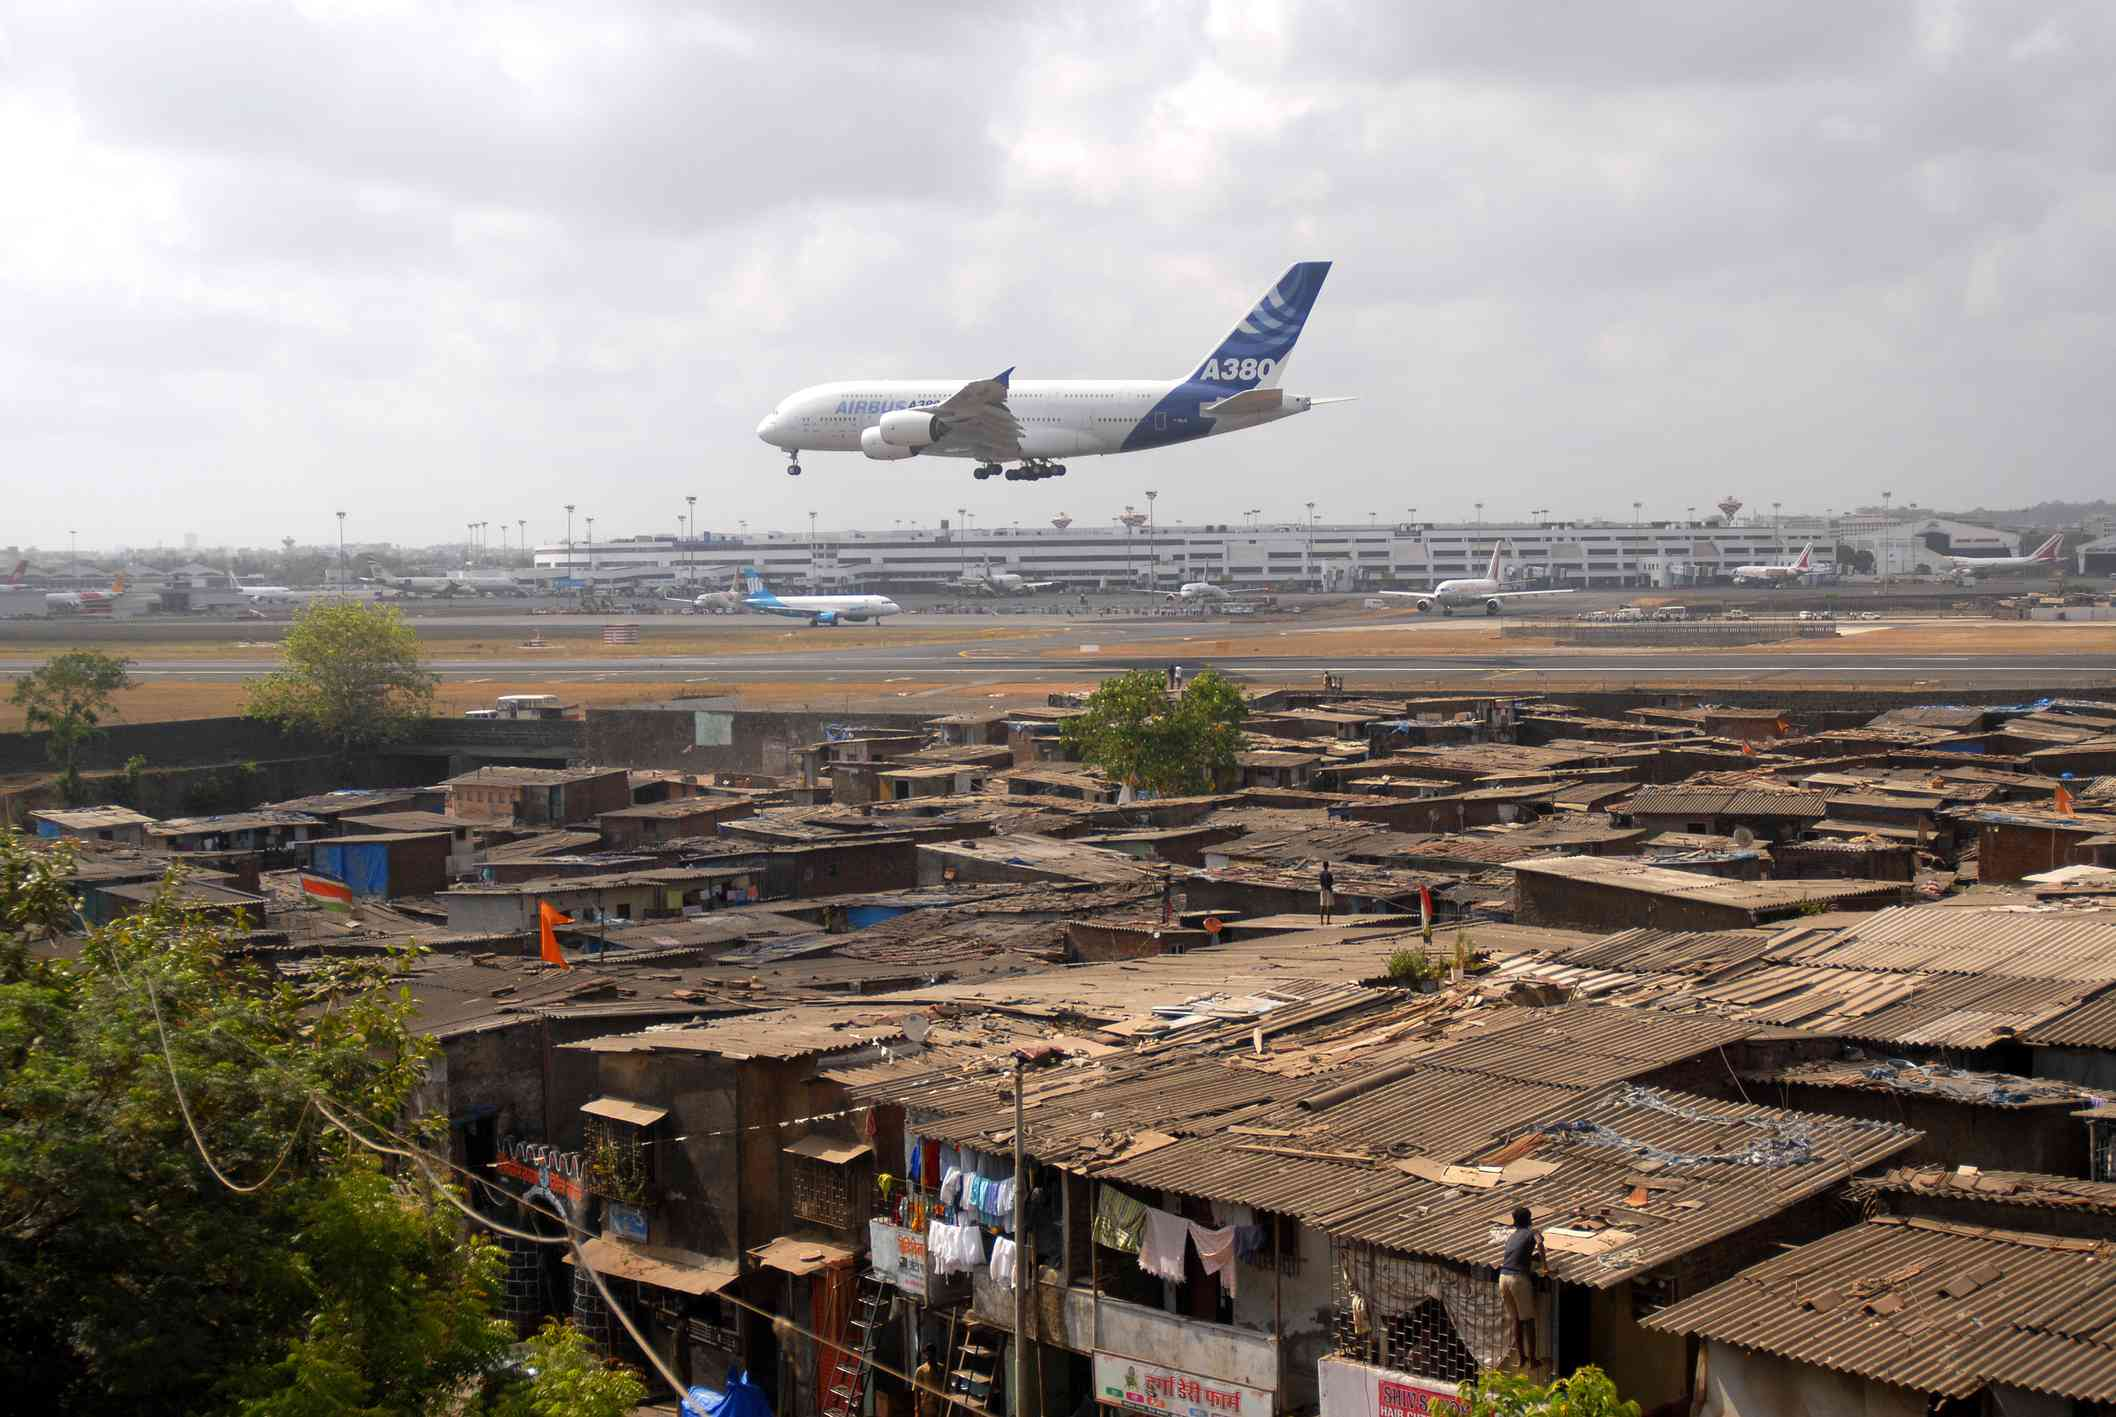 Largest commercial airline Airbus A380 lands at Chhatrapati Shivaji International Airport in Mumbai